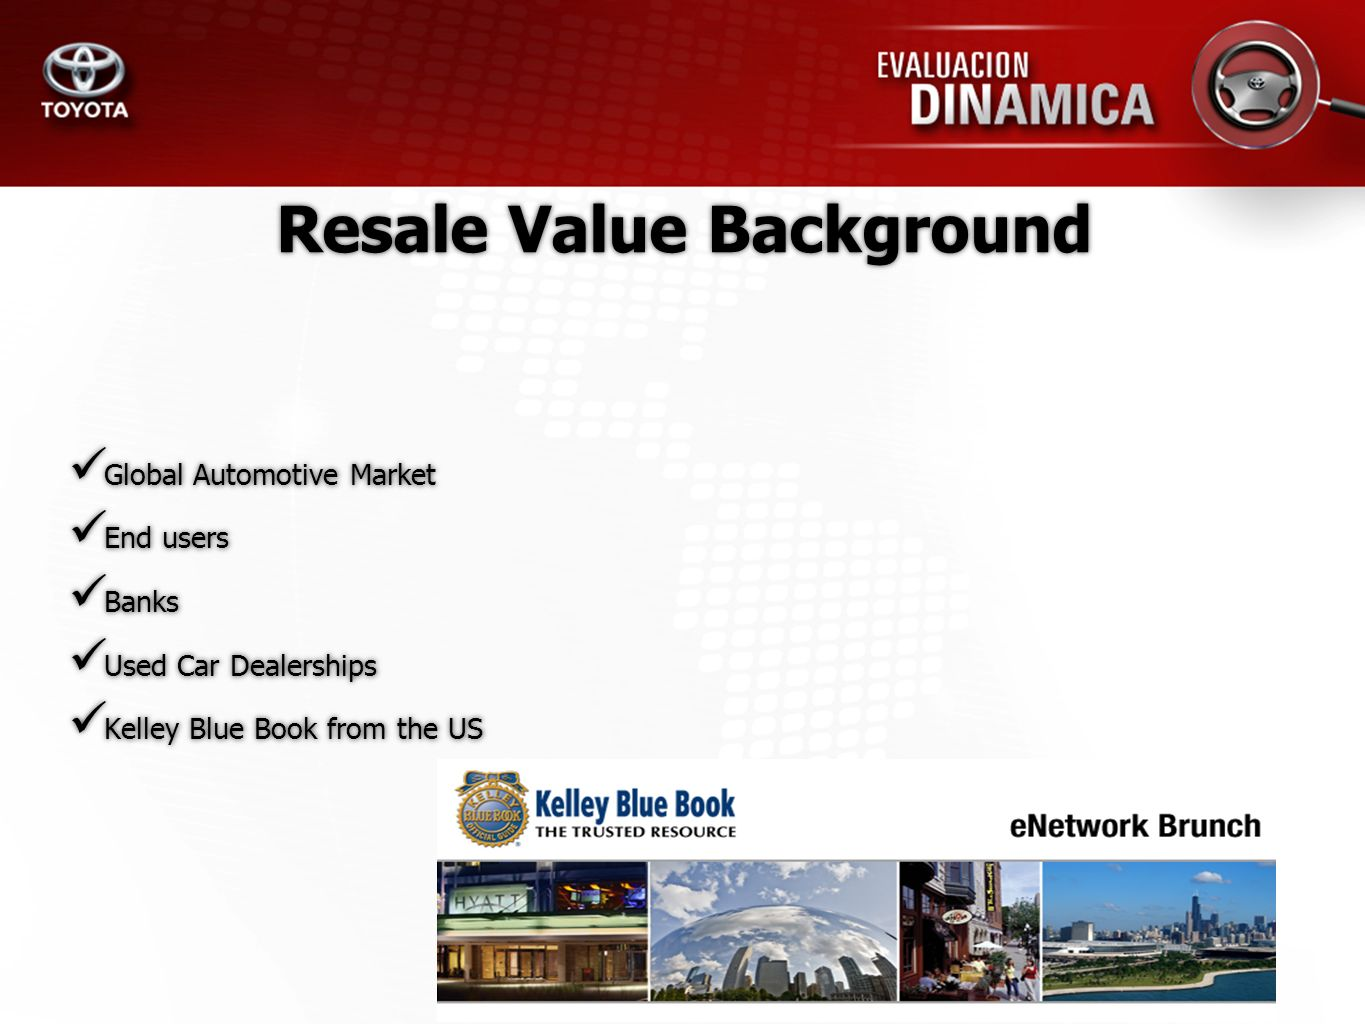 Resale Value Background